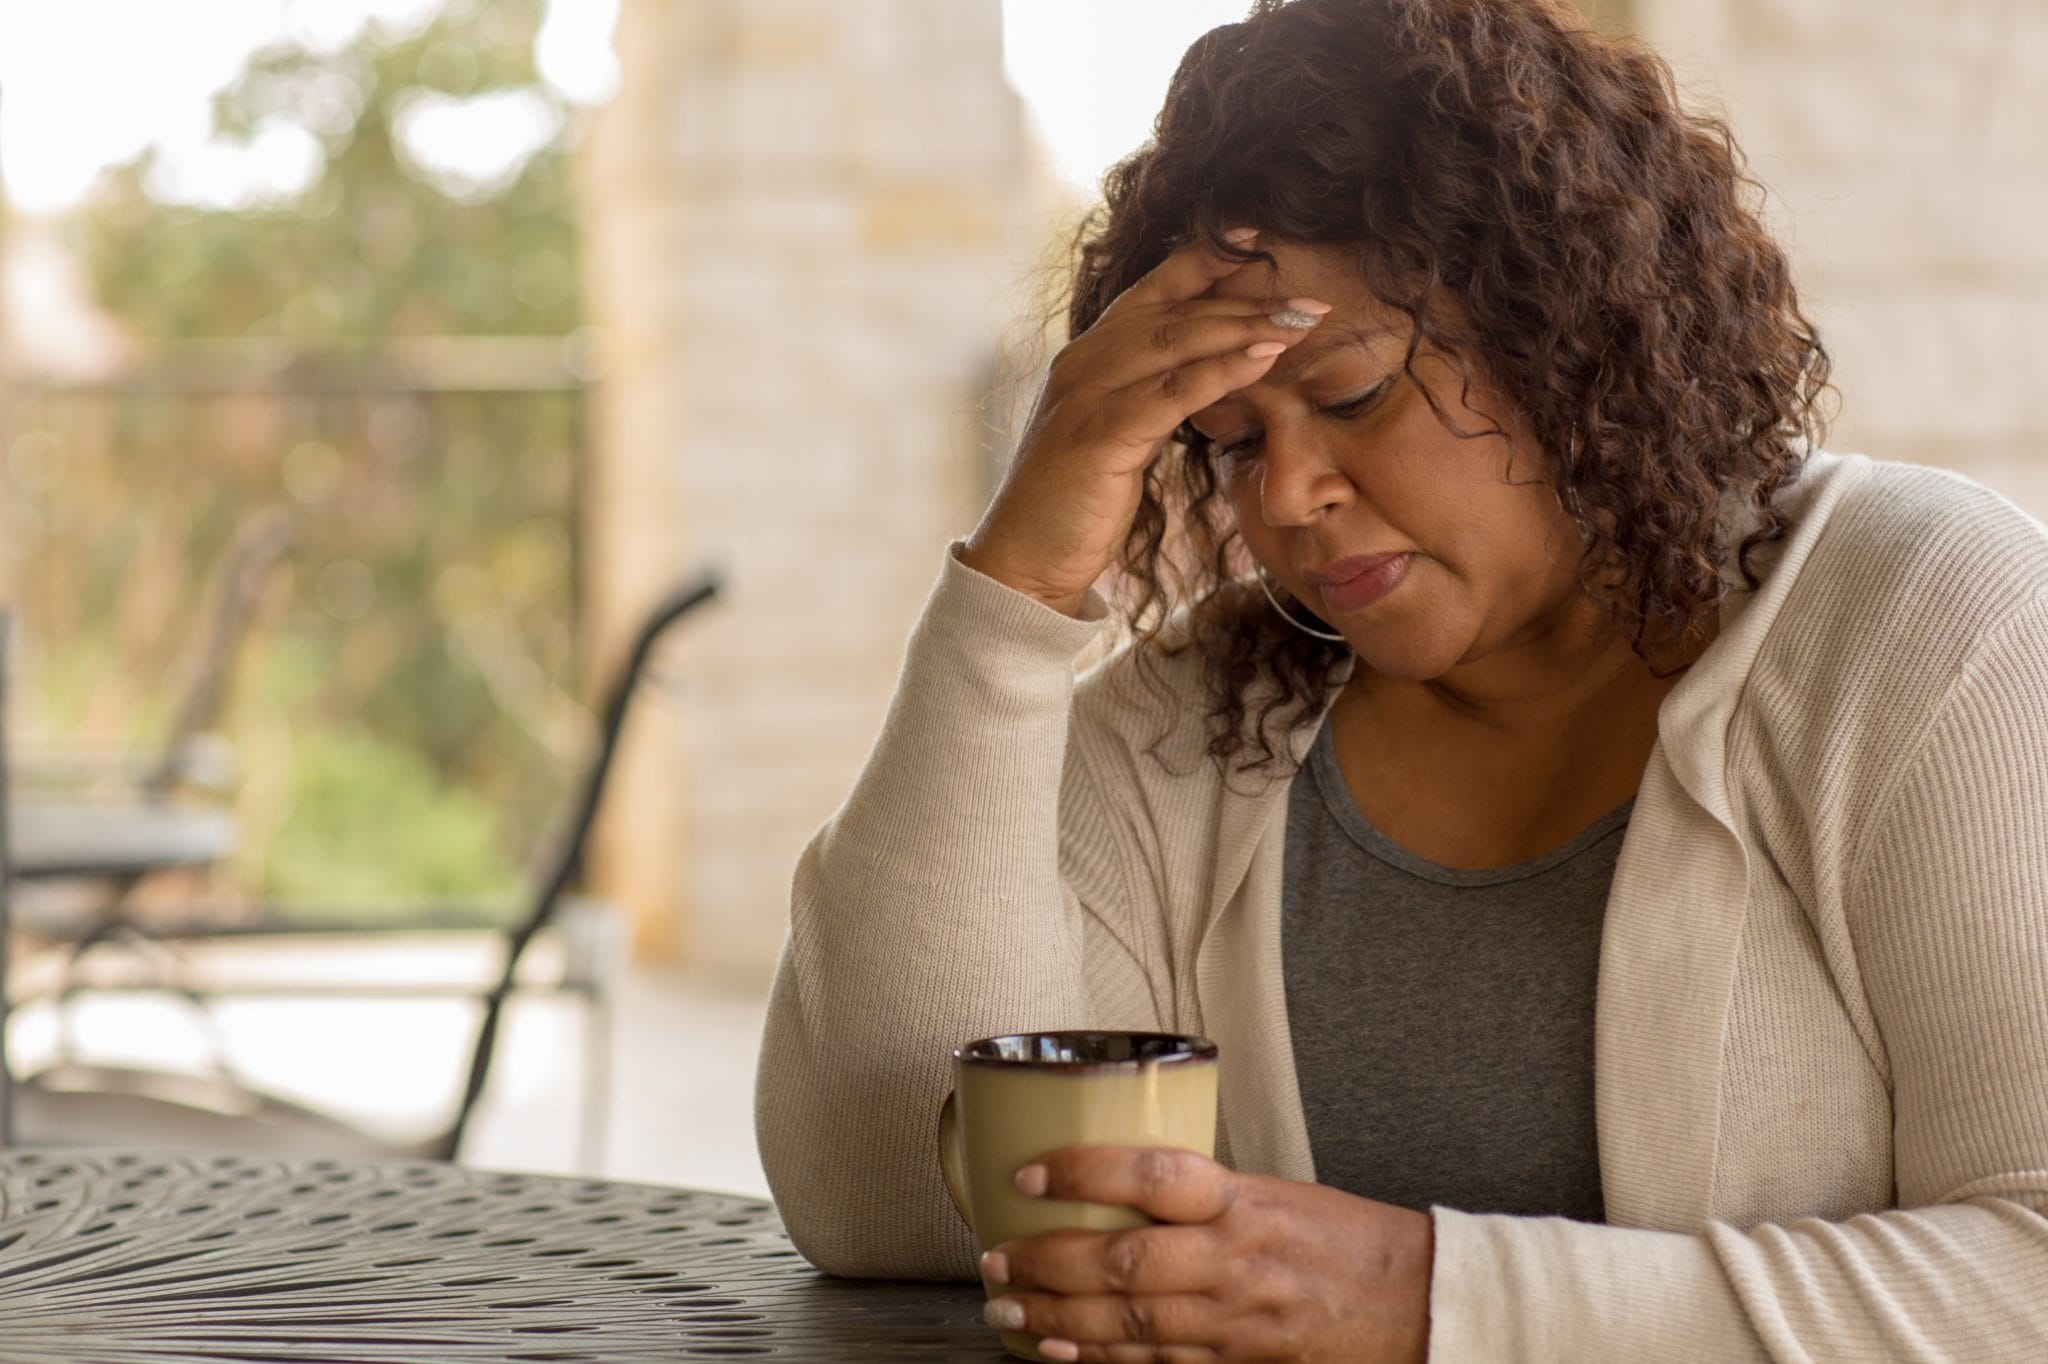 Coping with Loss and Grieving